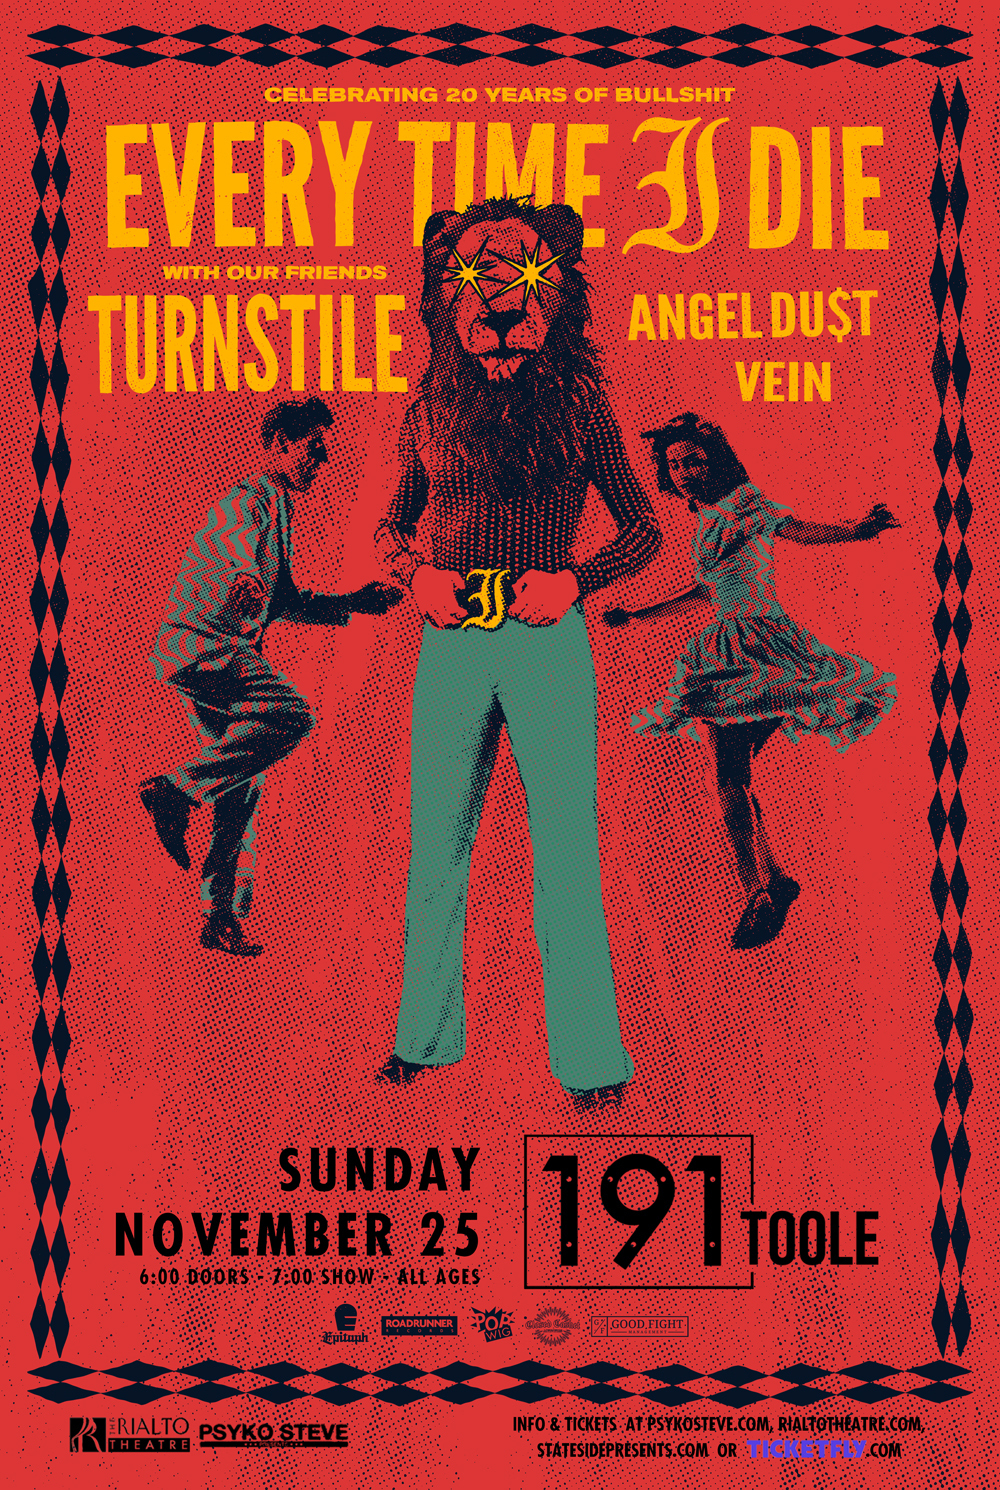 image for event Every Time I Die, Turnstile, Angel Du$t, and Vein